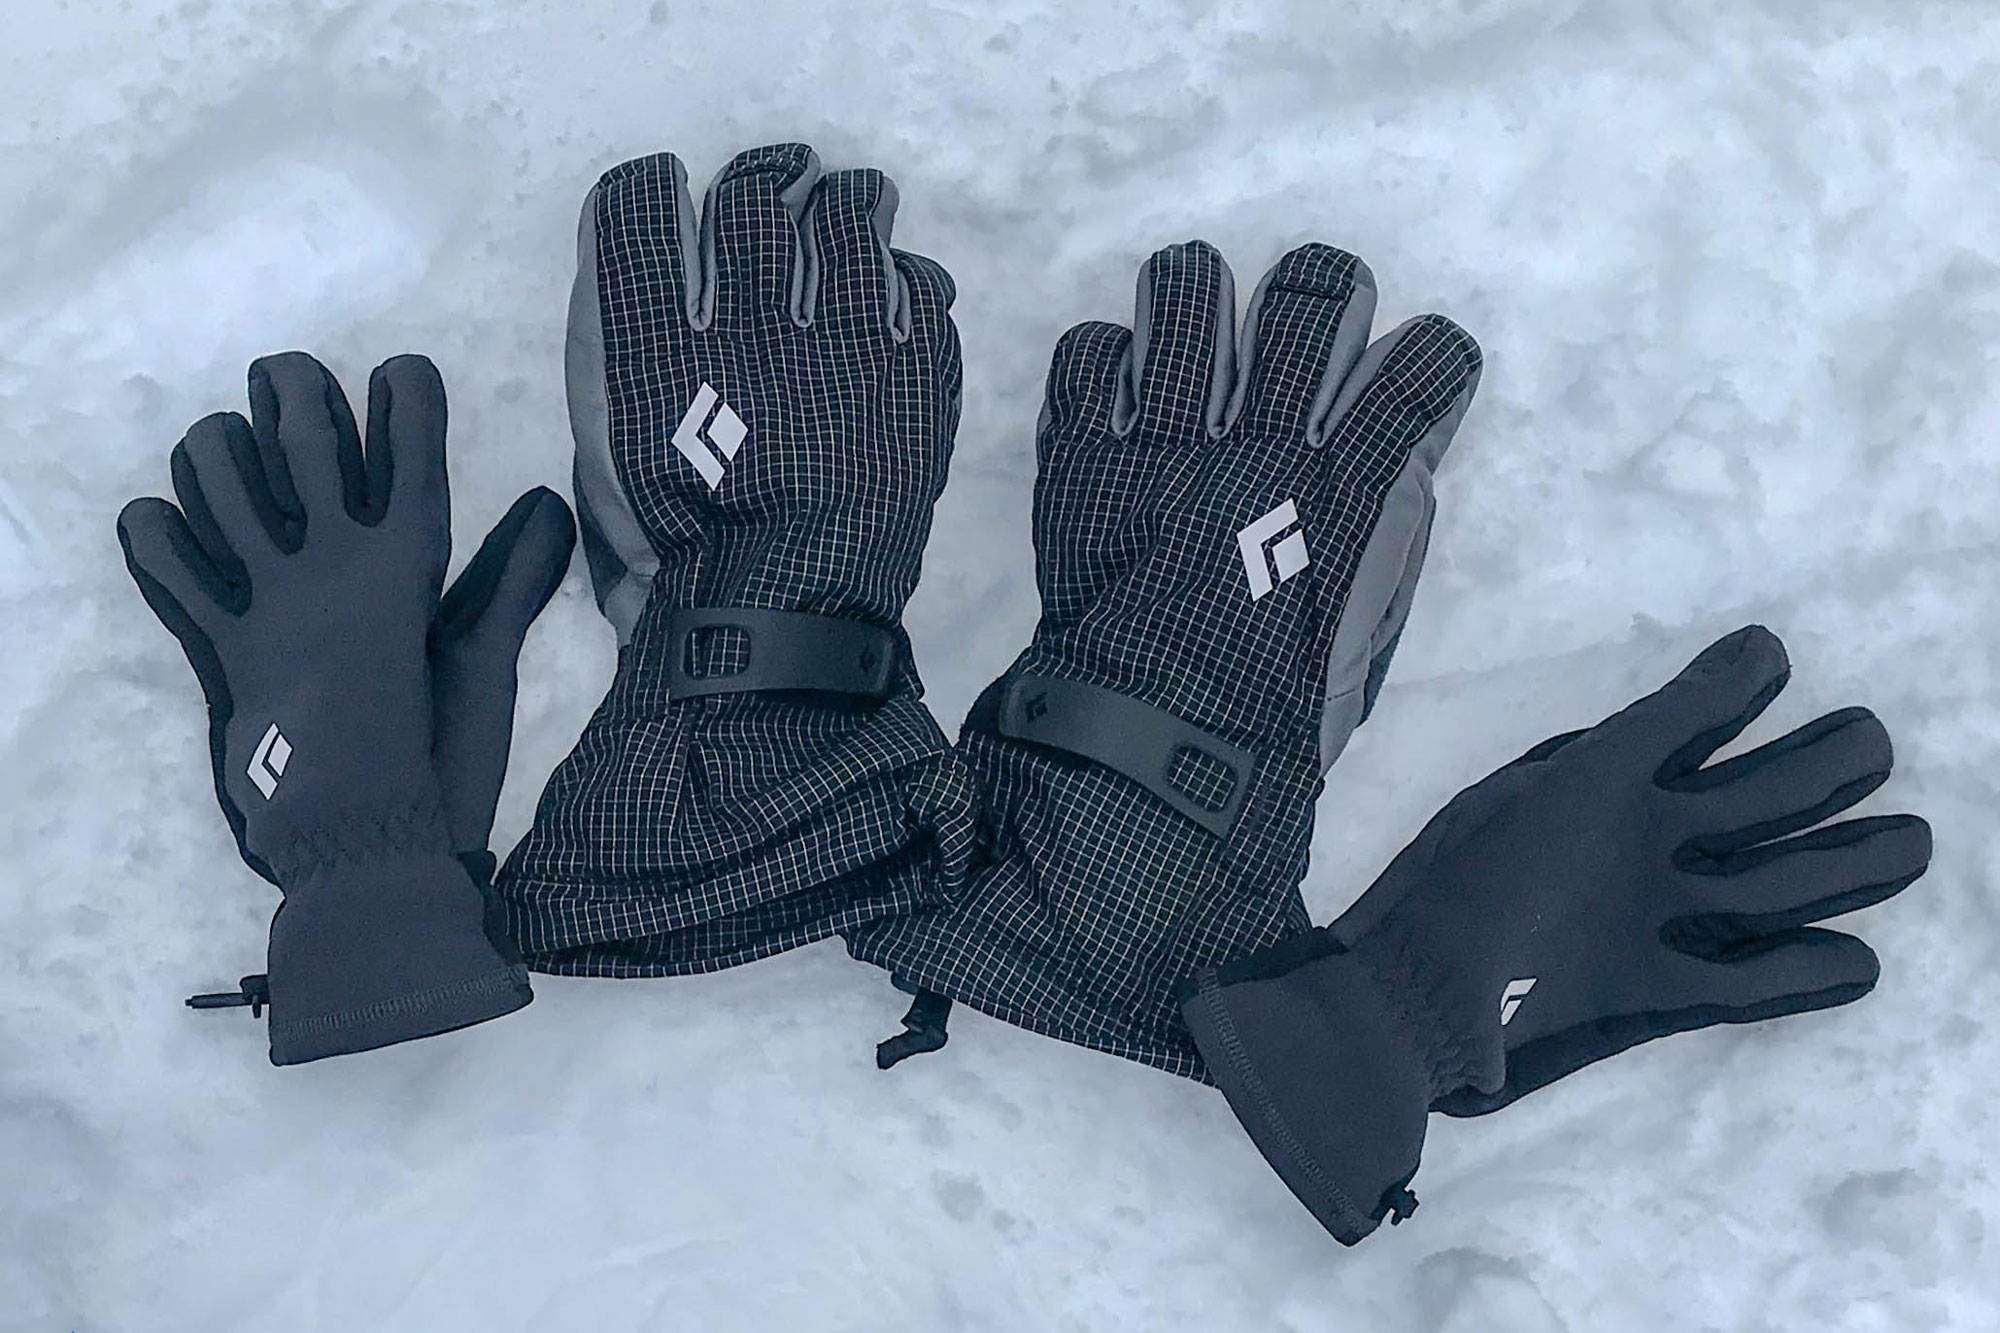 34e7e1784 Dyneema & Goat Skin: Black Diamond Helio Gloves Reviewed | GearJunkie